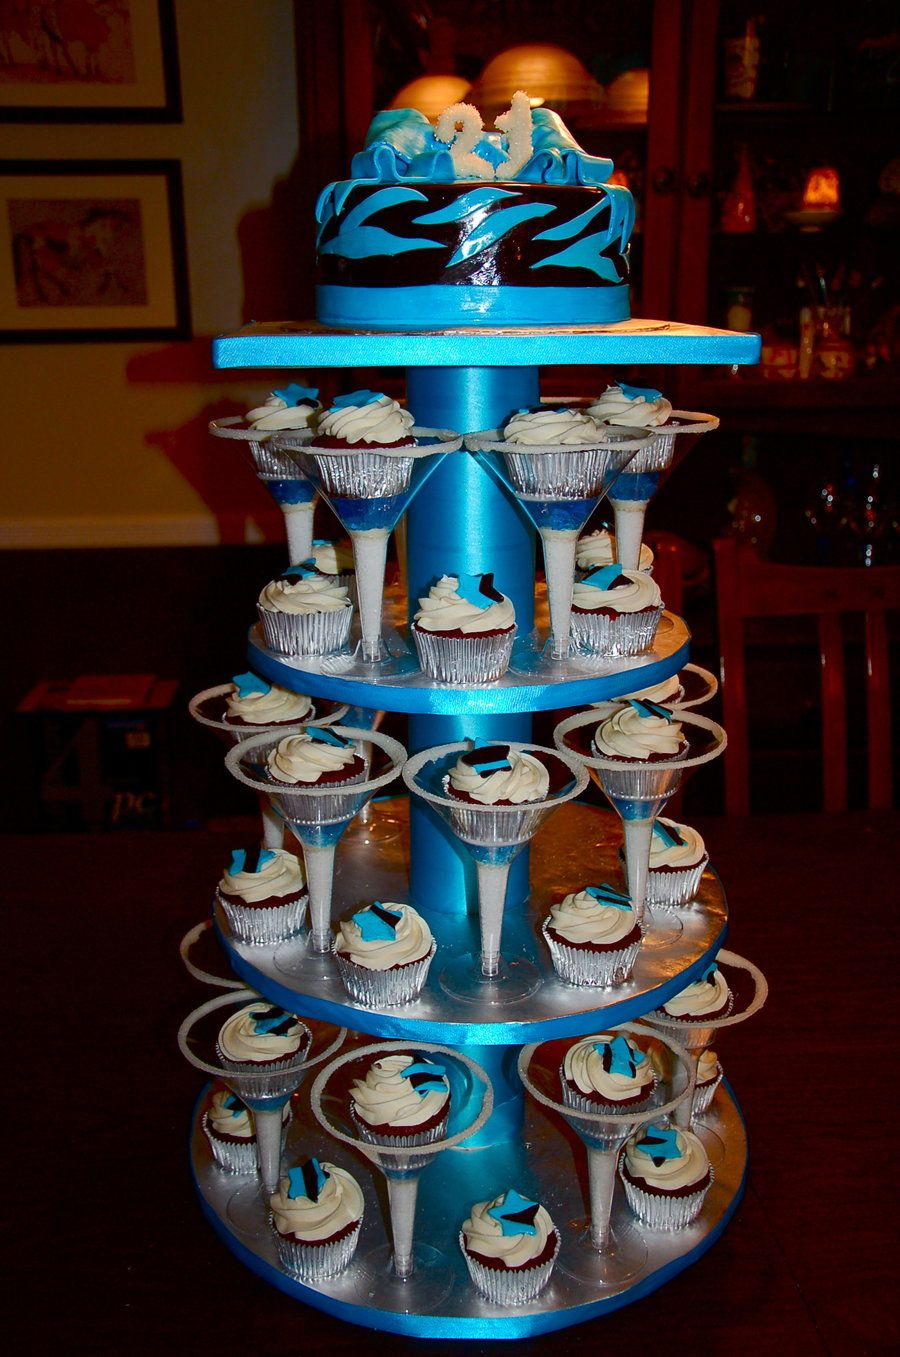 21st birthday cupcakes full display by Keep-It-Sweet ...